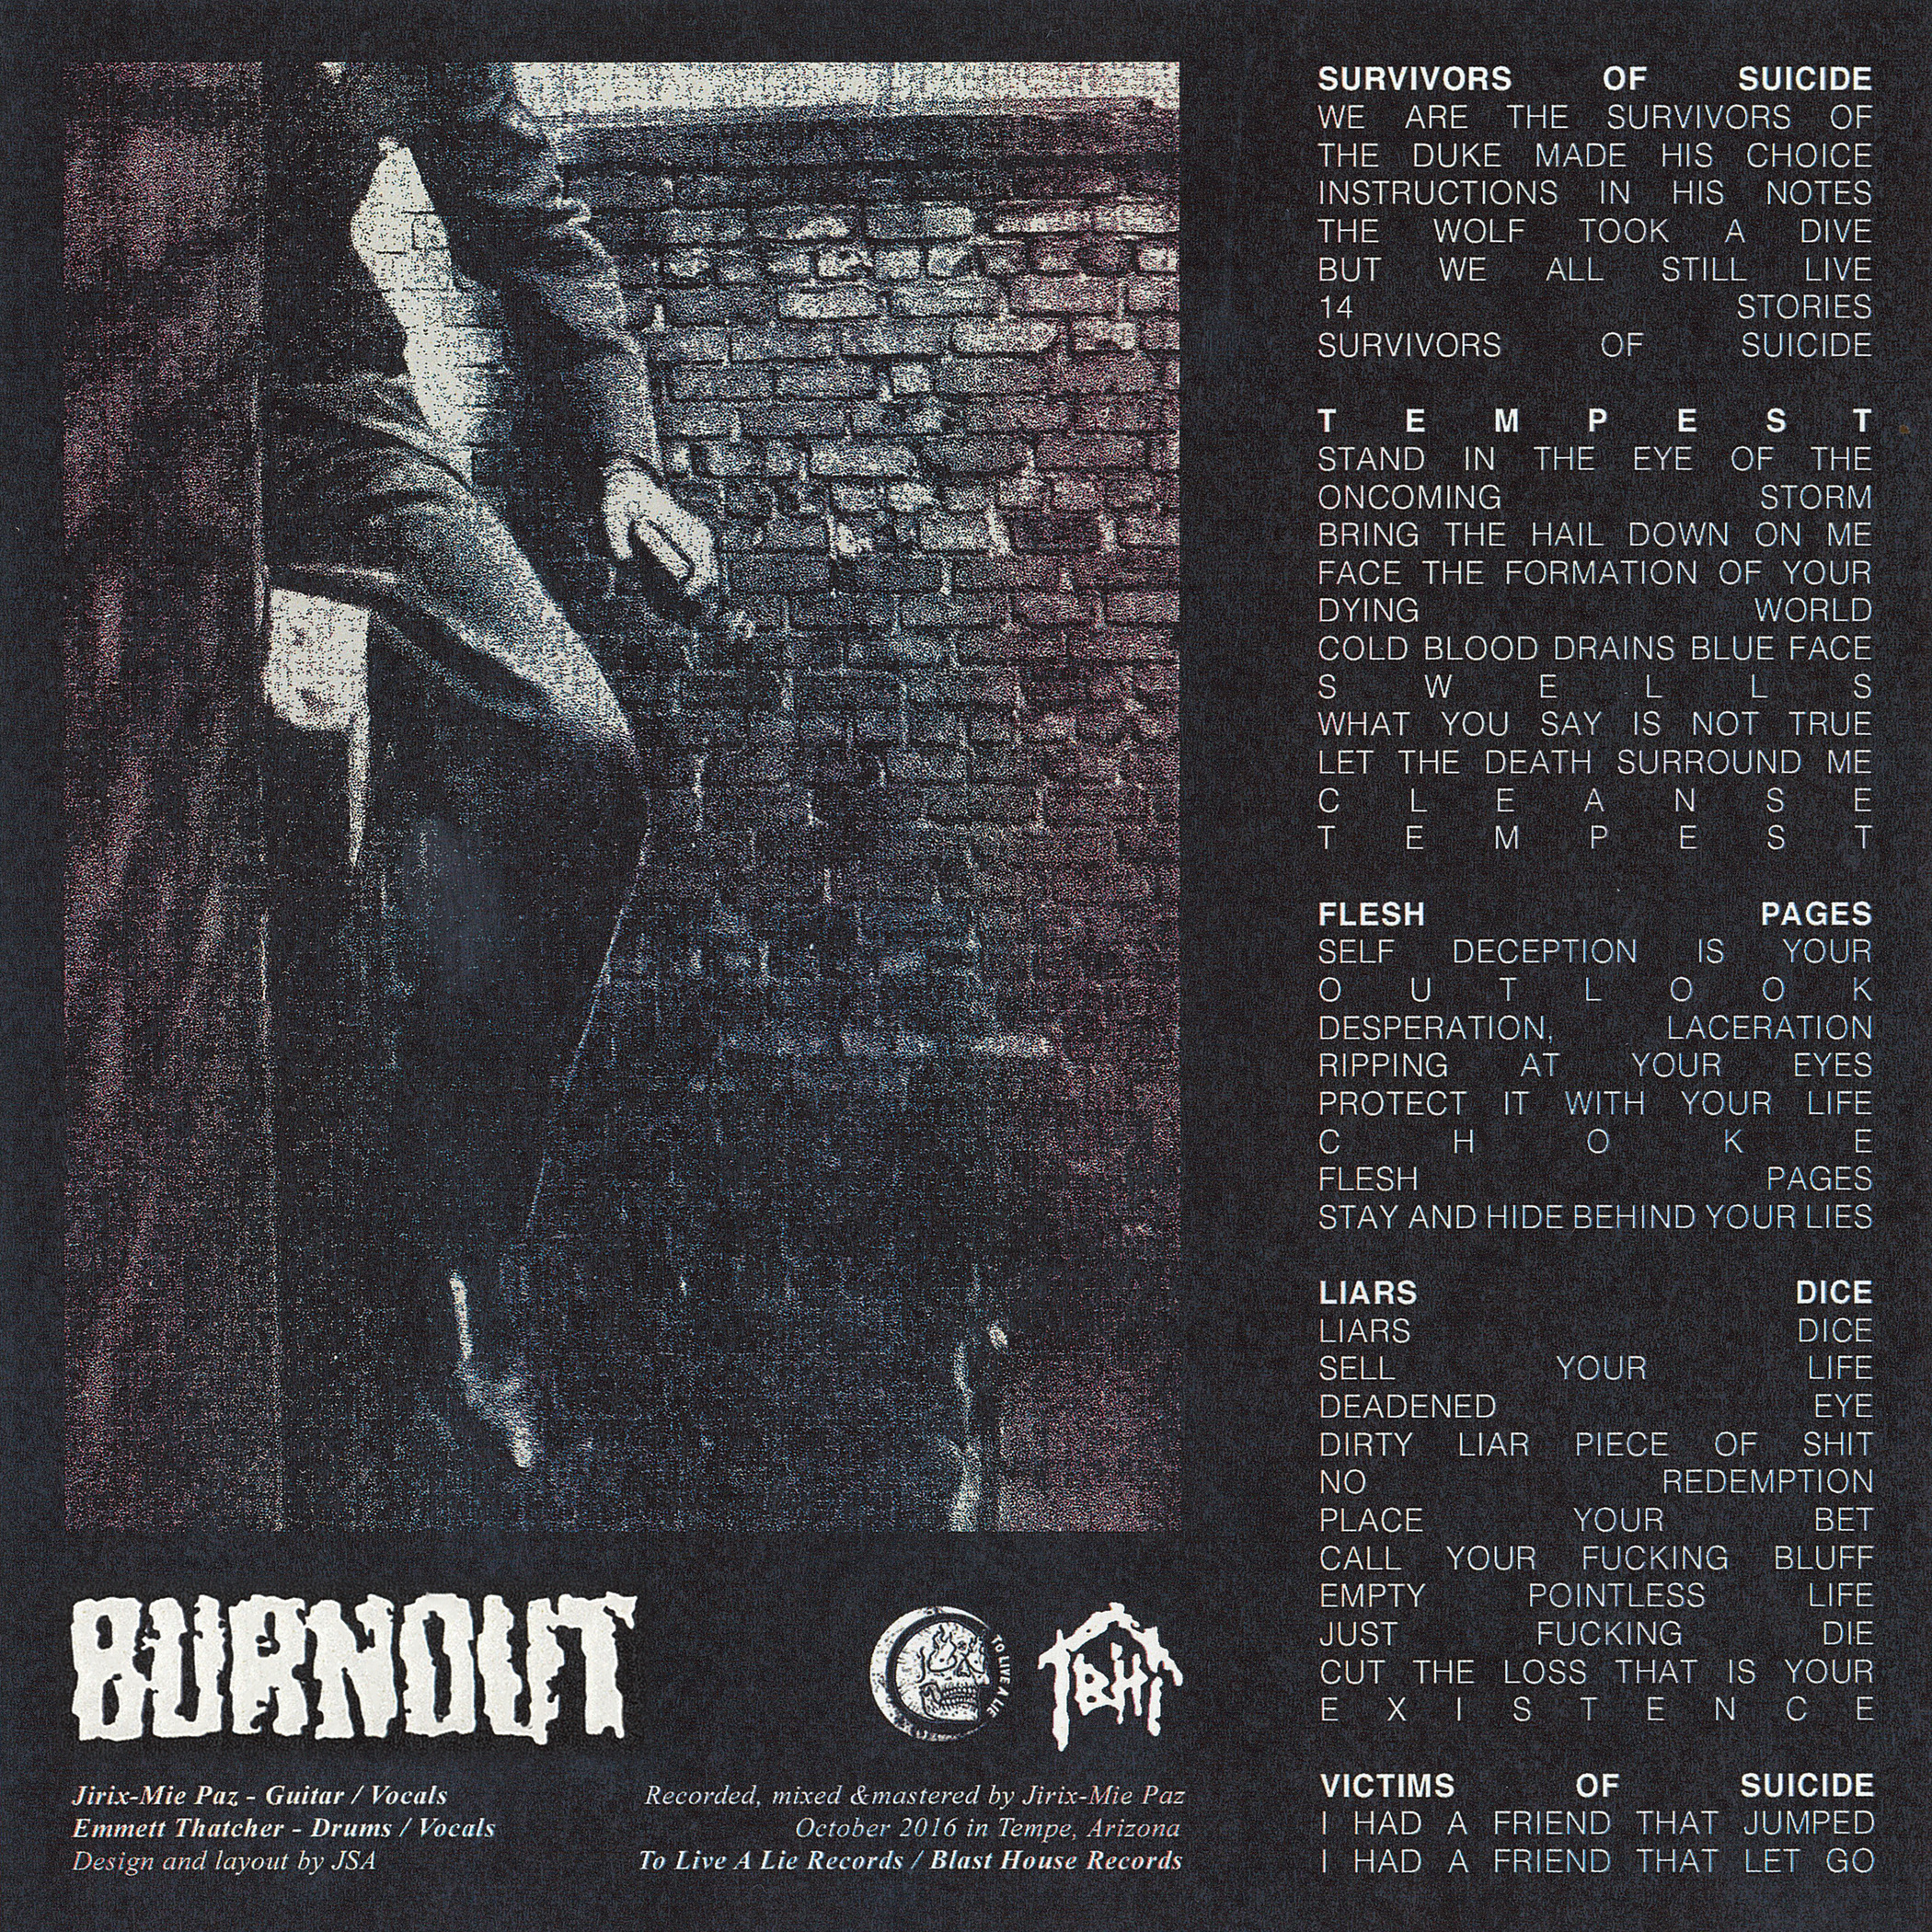 Burn-Out-ST-7-v4-insert-a-hr_2100.jpg